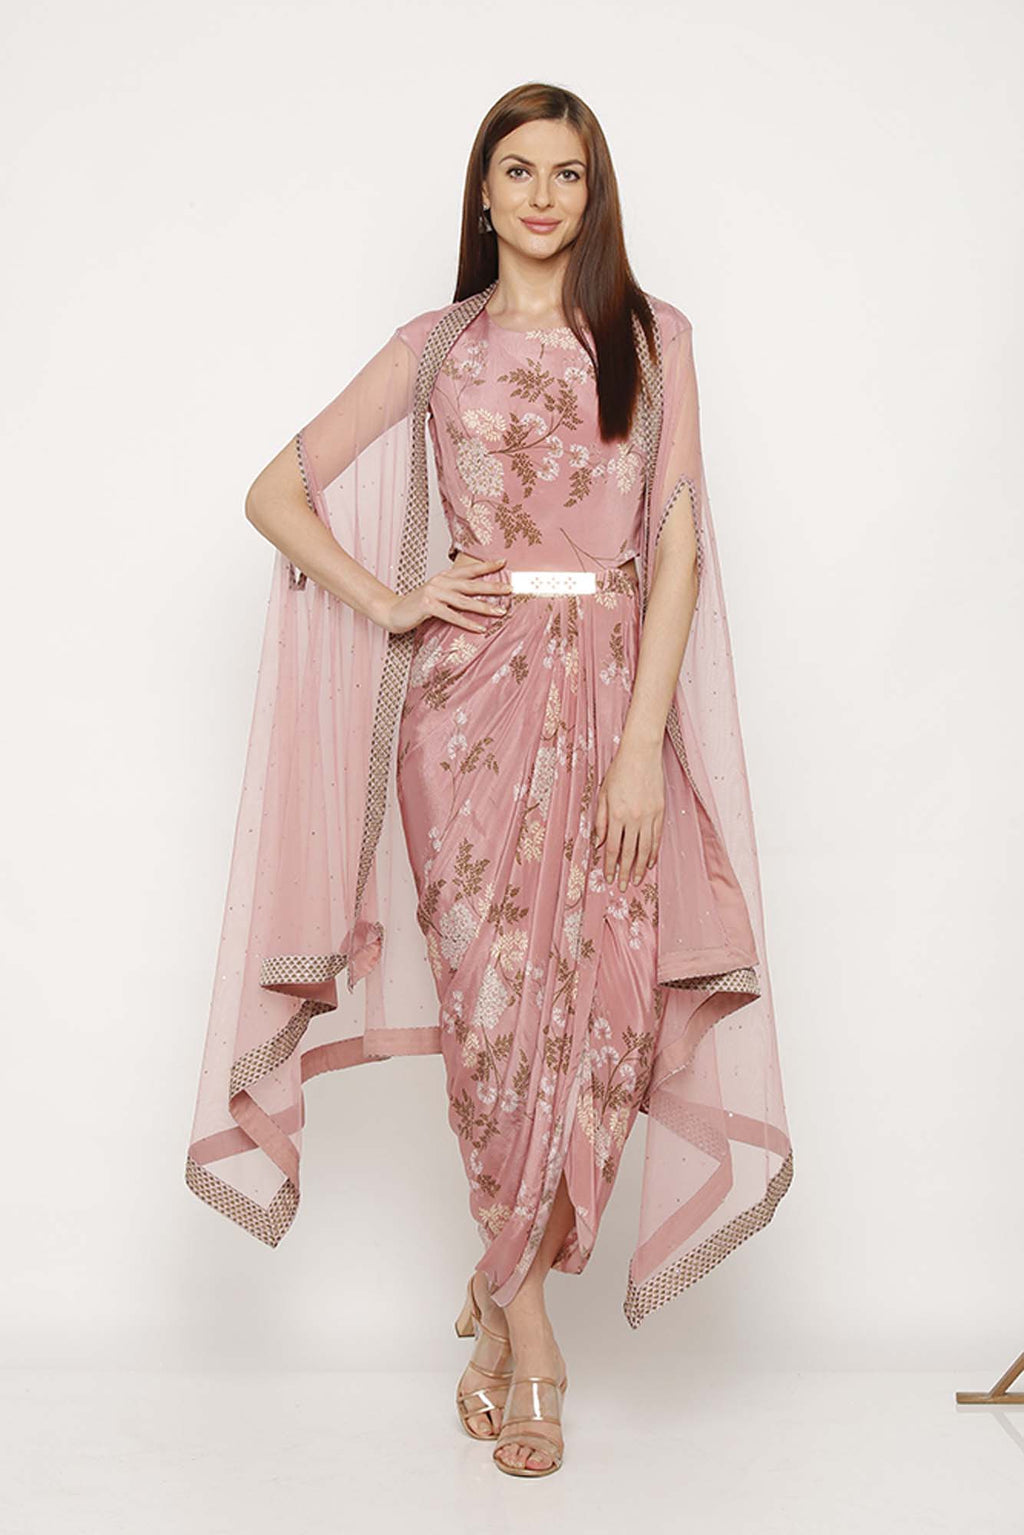 Pink Printed Dress with Net Cape - Riviera Closet